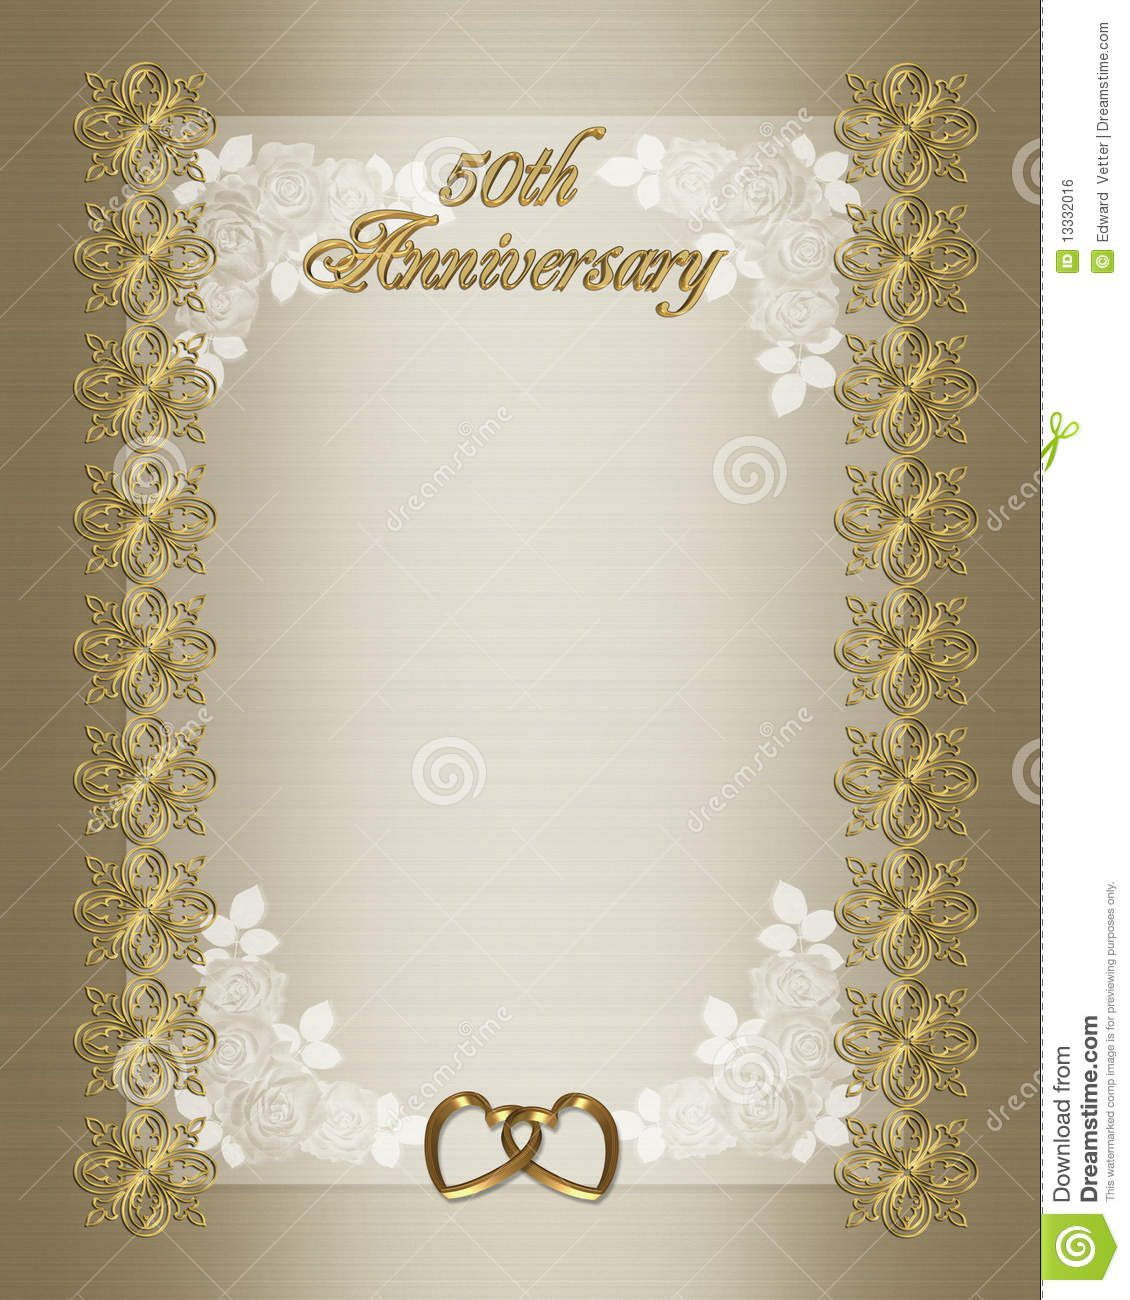 006 Outstanding 50th Anniversary Invitation Template Free Download Highest Quality  Golden WeddingFull